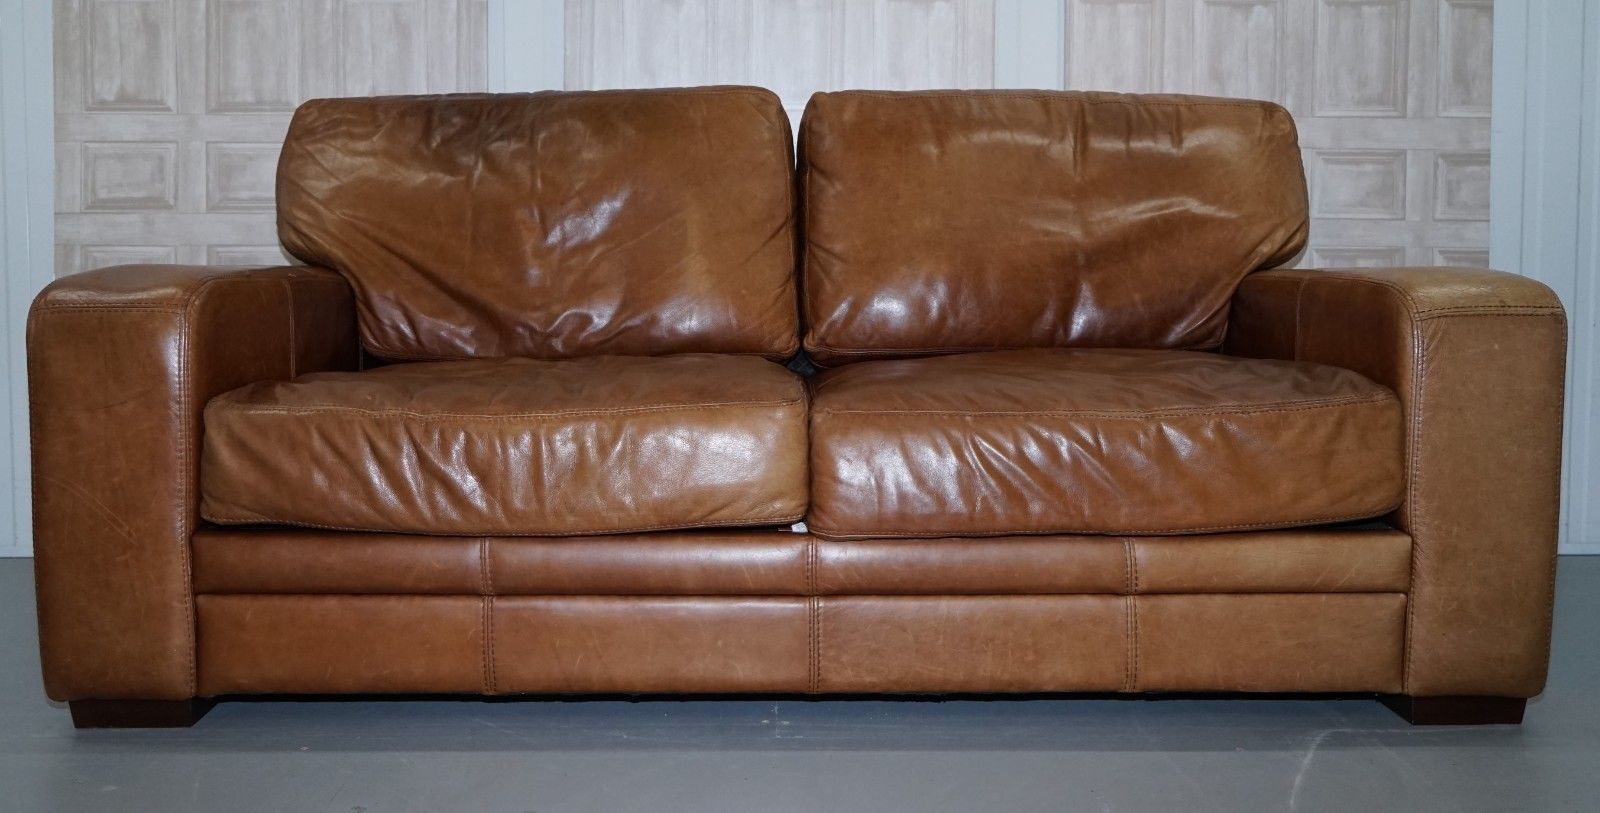 Soho Lush Two Seater Leather Sofa Bed